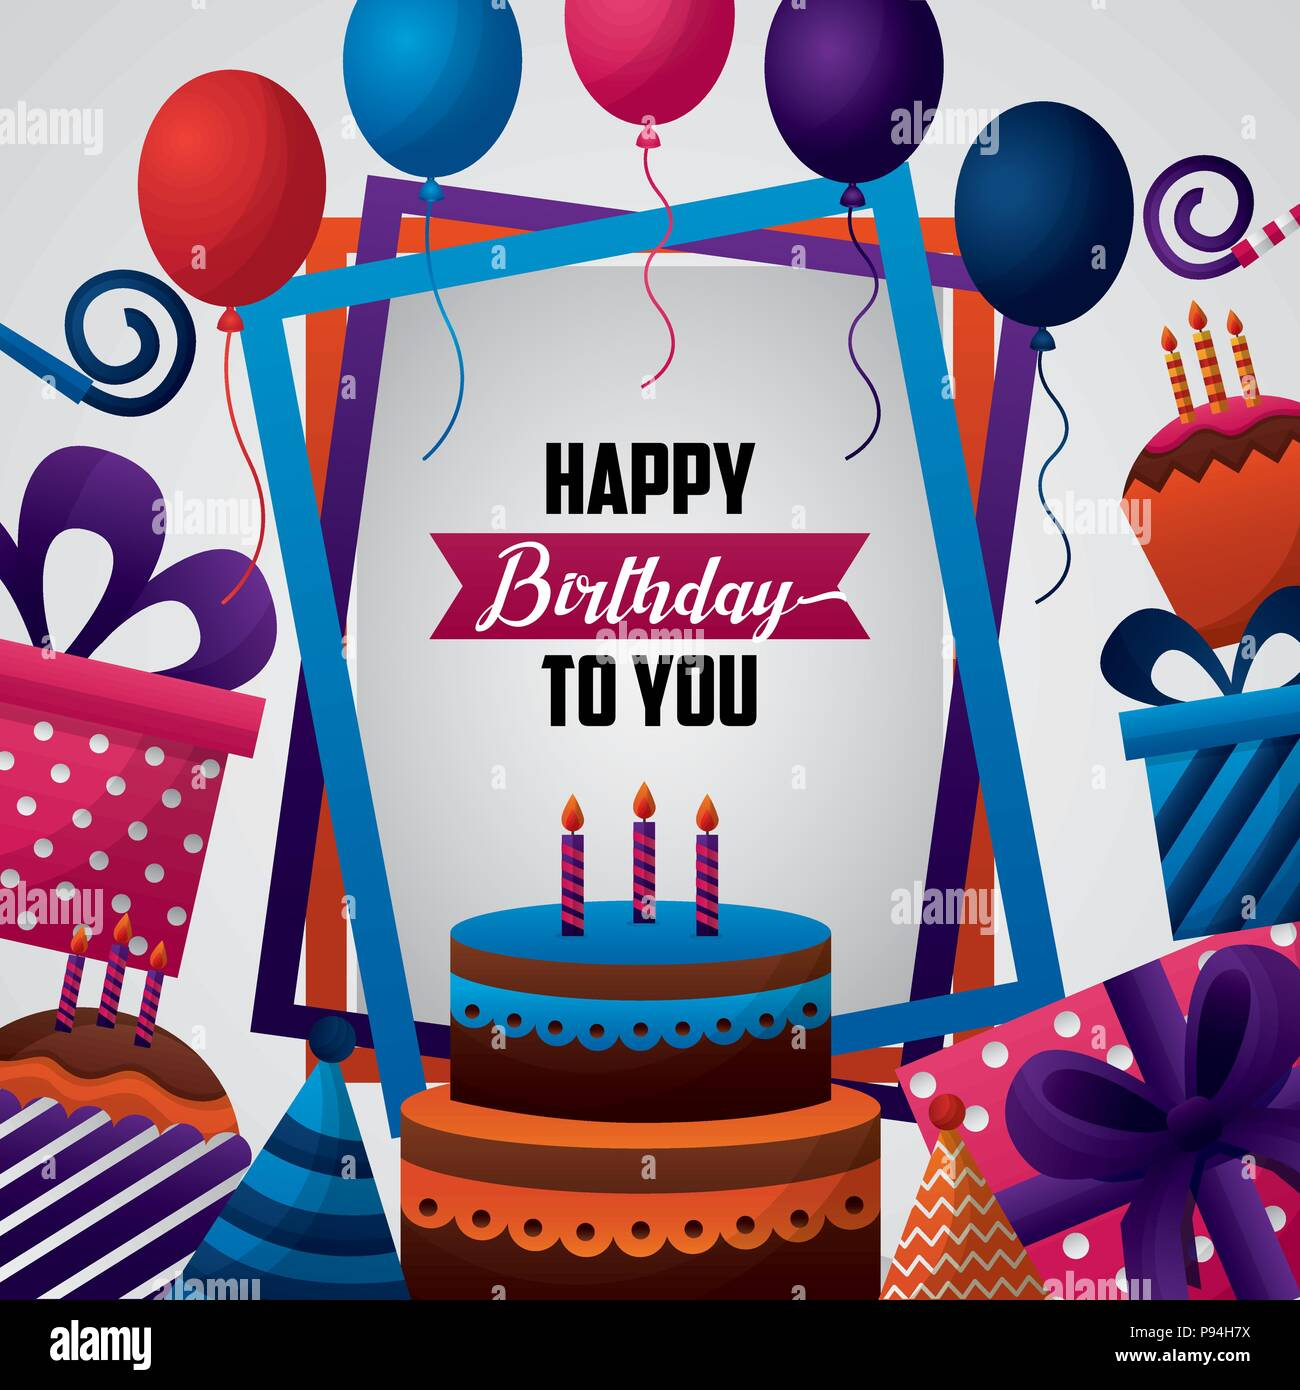 happy birthday card colors frames decoration sign cake candless hats